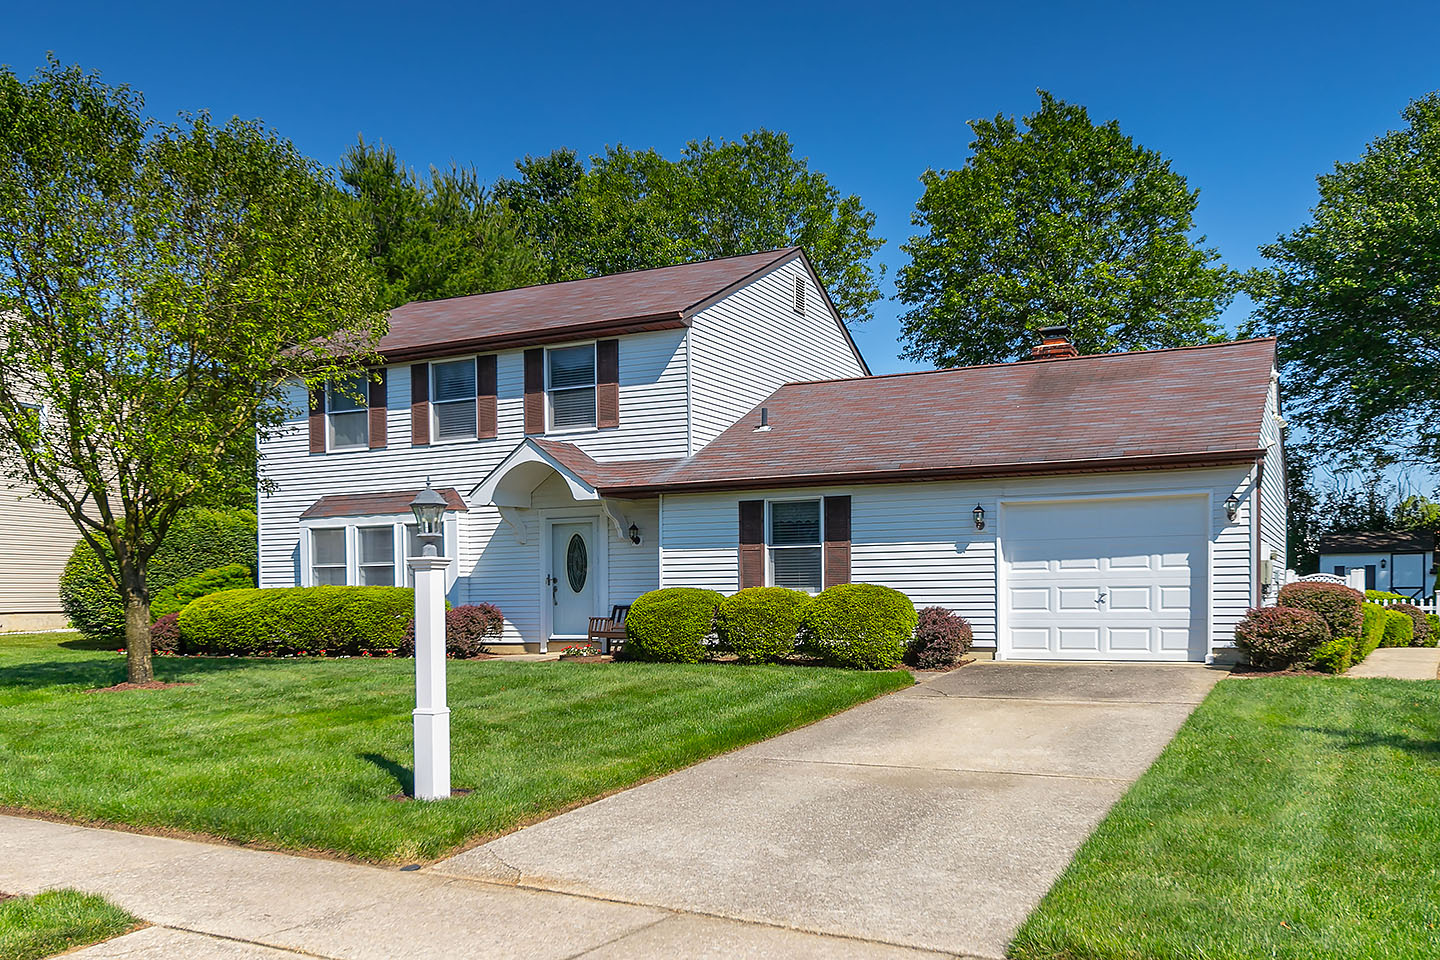 53 Manchester Rd, Sewell NJ 08080